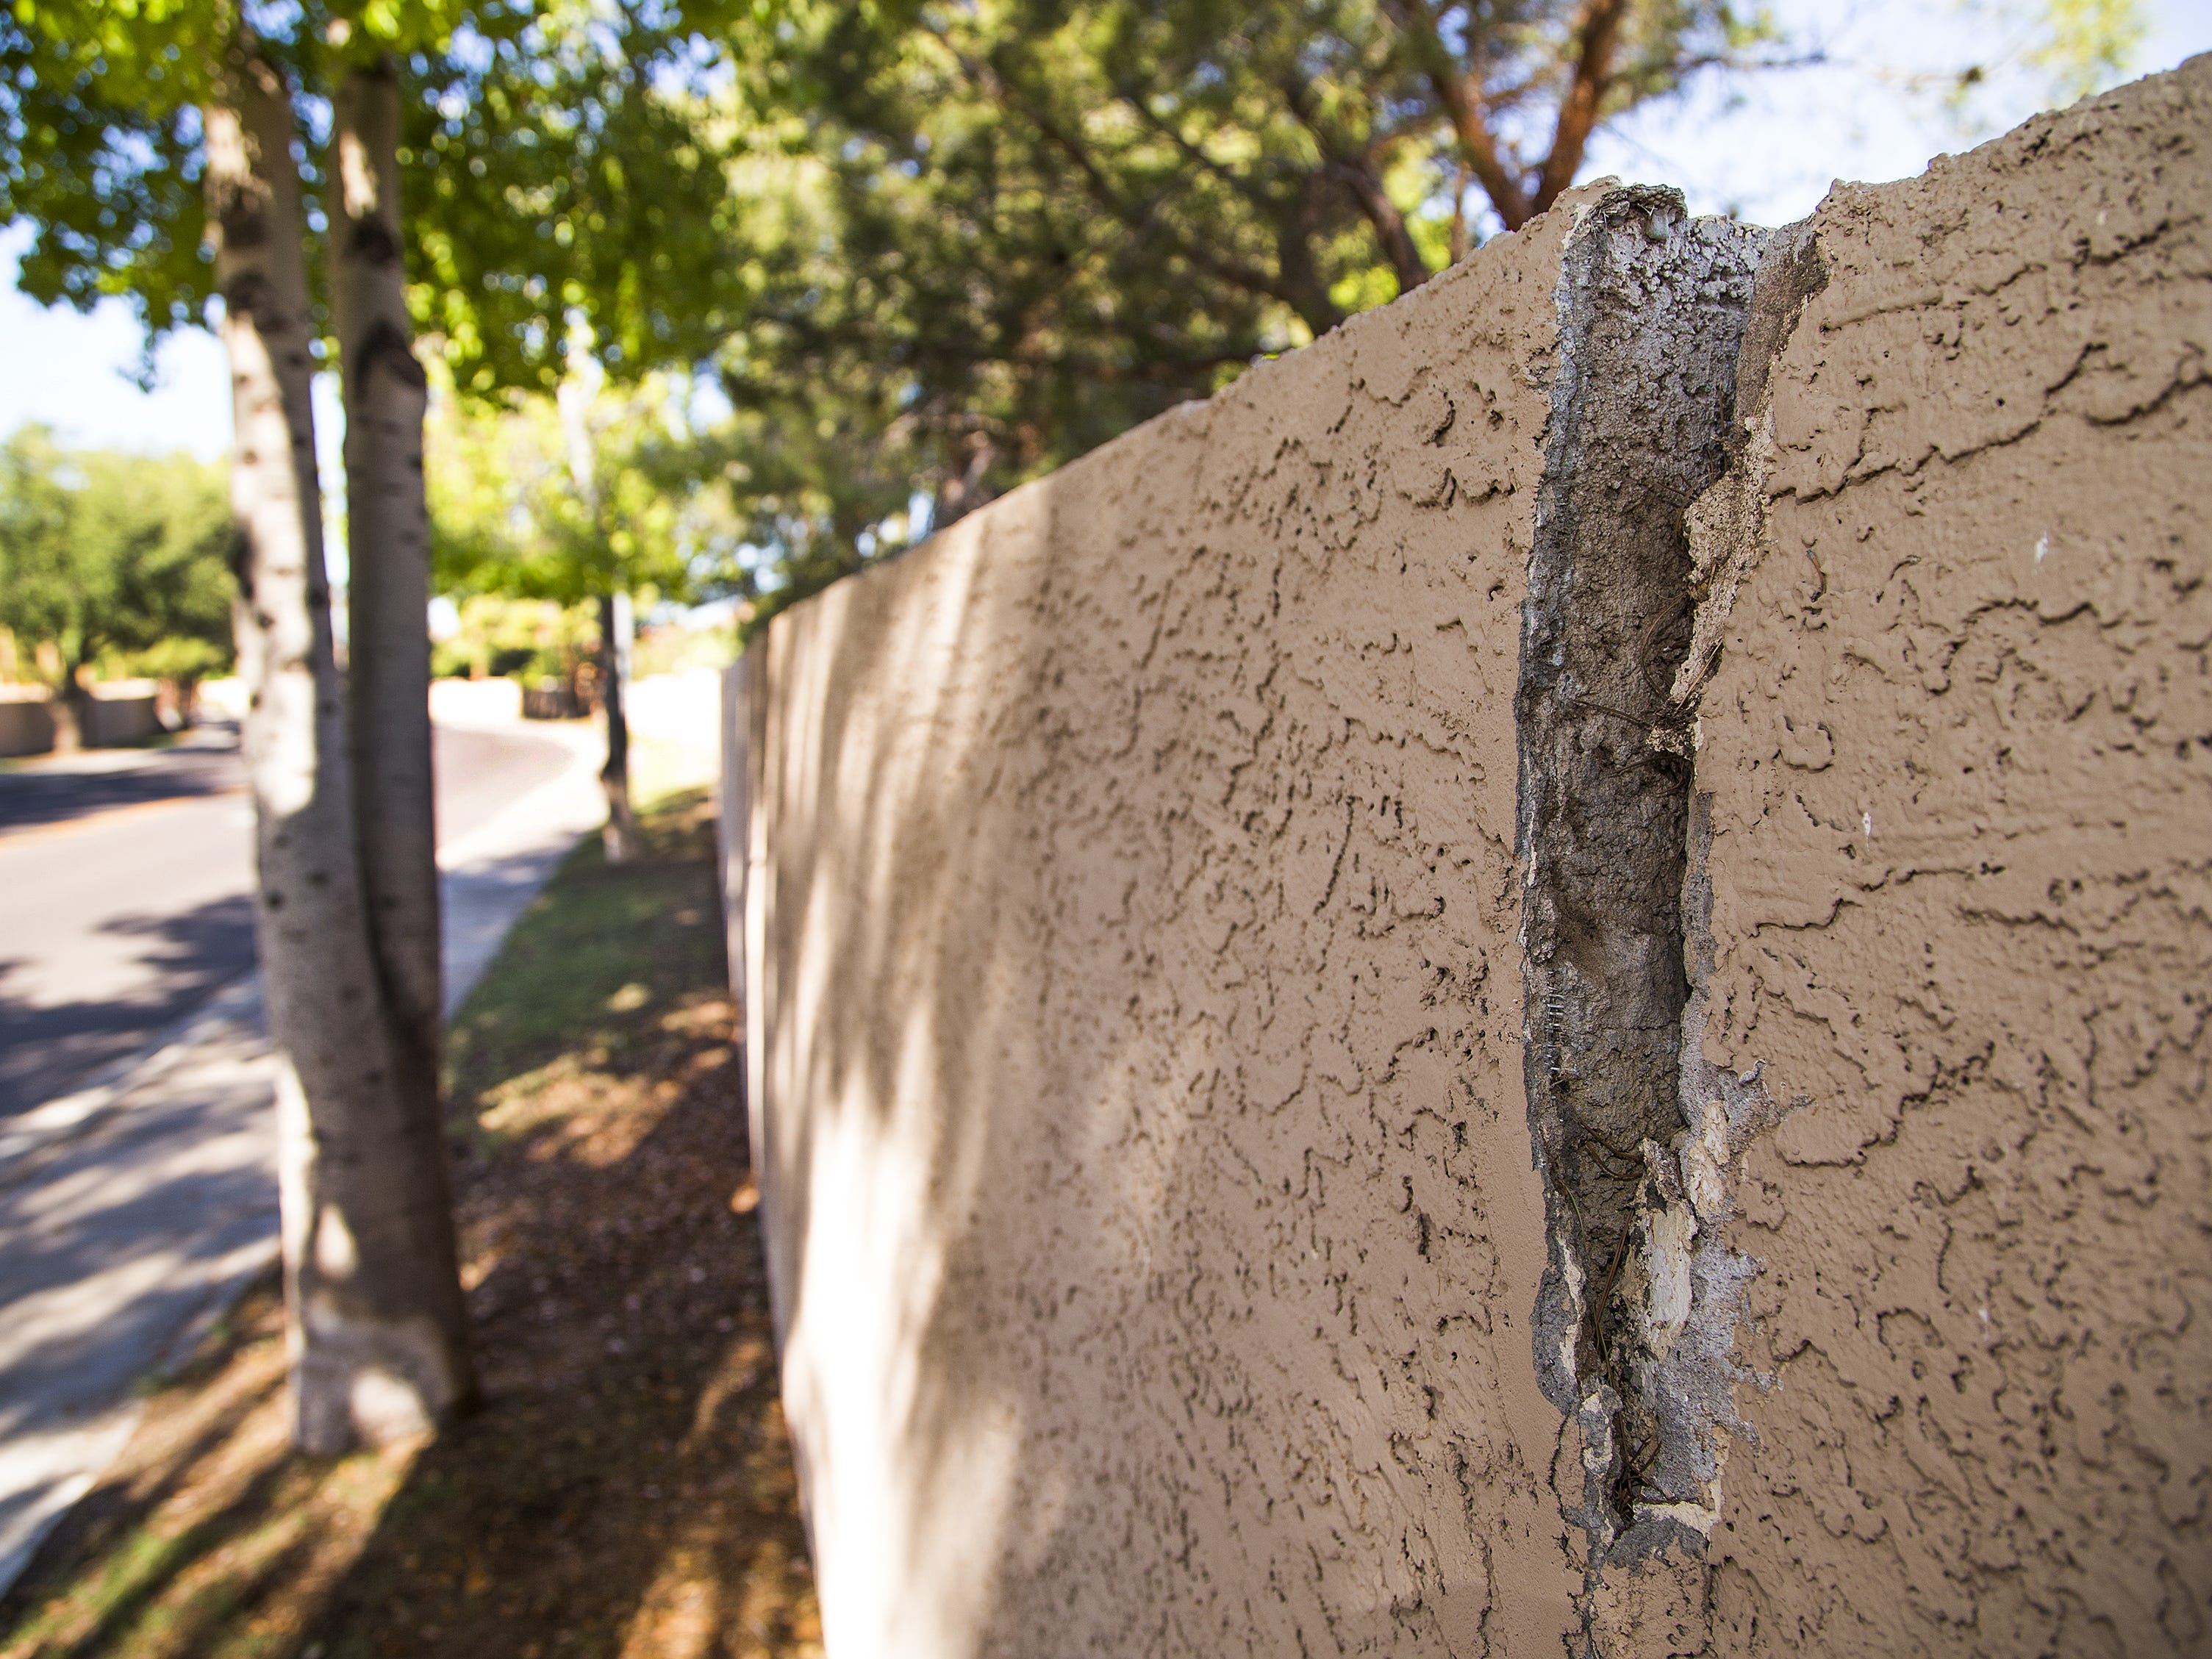 Roots from some trees have caused cracks in privacy walls along Edgewater Drive in Peoria. The HOA has told residents that they may have to cut down some of the trees.